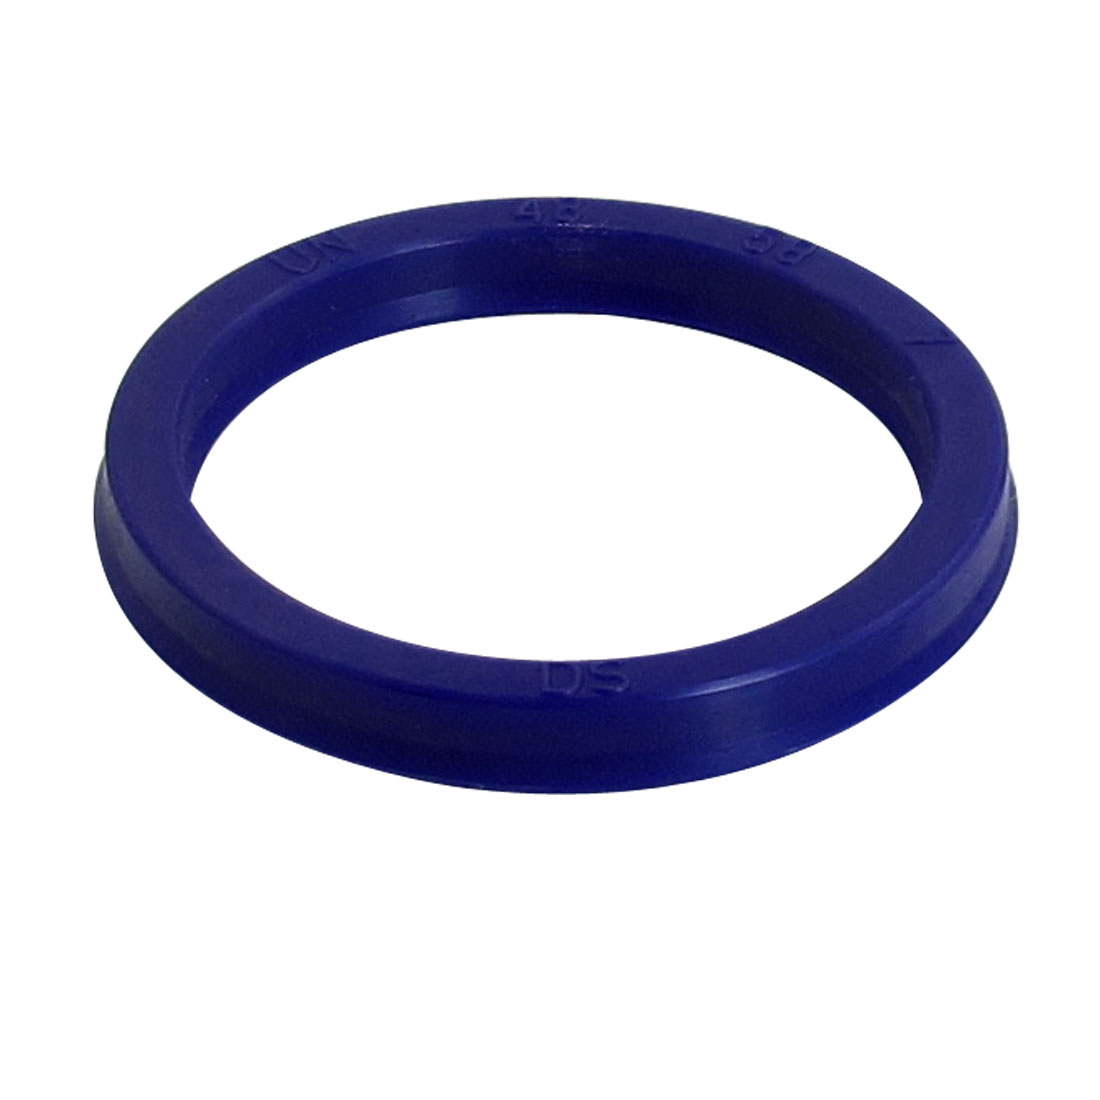 Blue PU 48mm x 58mm x 7mm Double Lip Sealing Cushion Dust Seal Ring